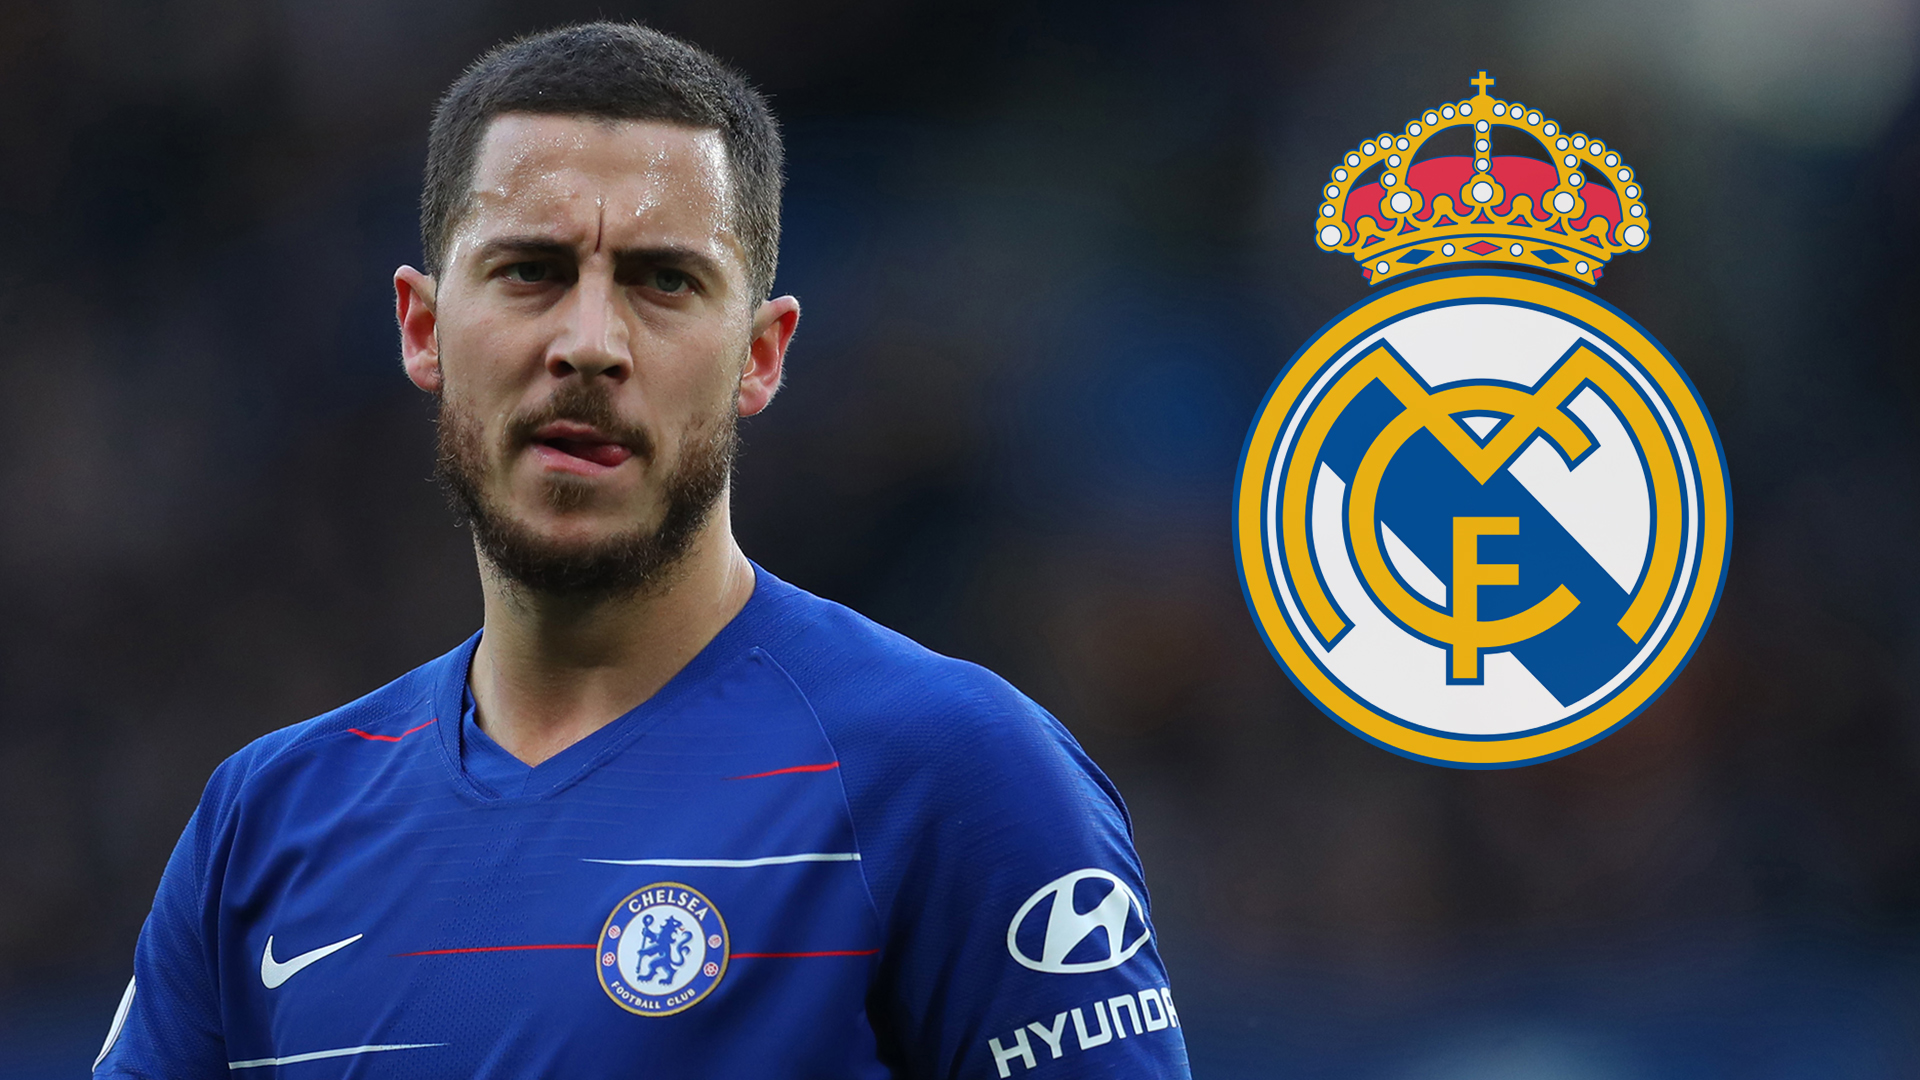 Done Deal! Real Madrid Will Announce The Signing Of Eden Hazard In A Matter Of Days 1